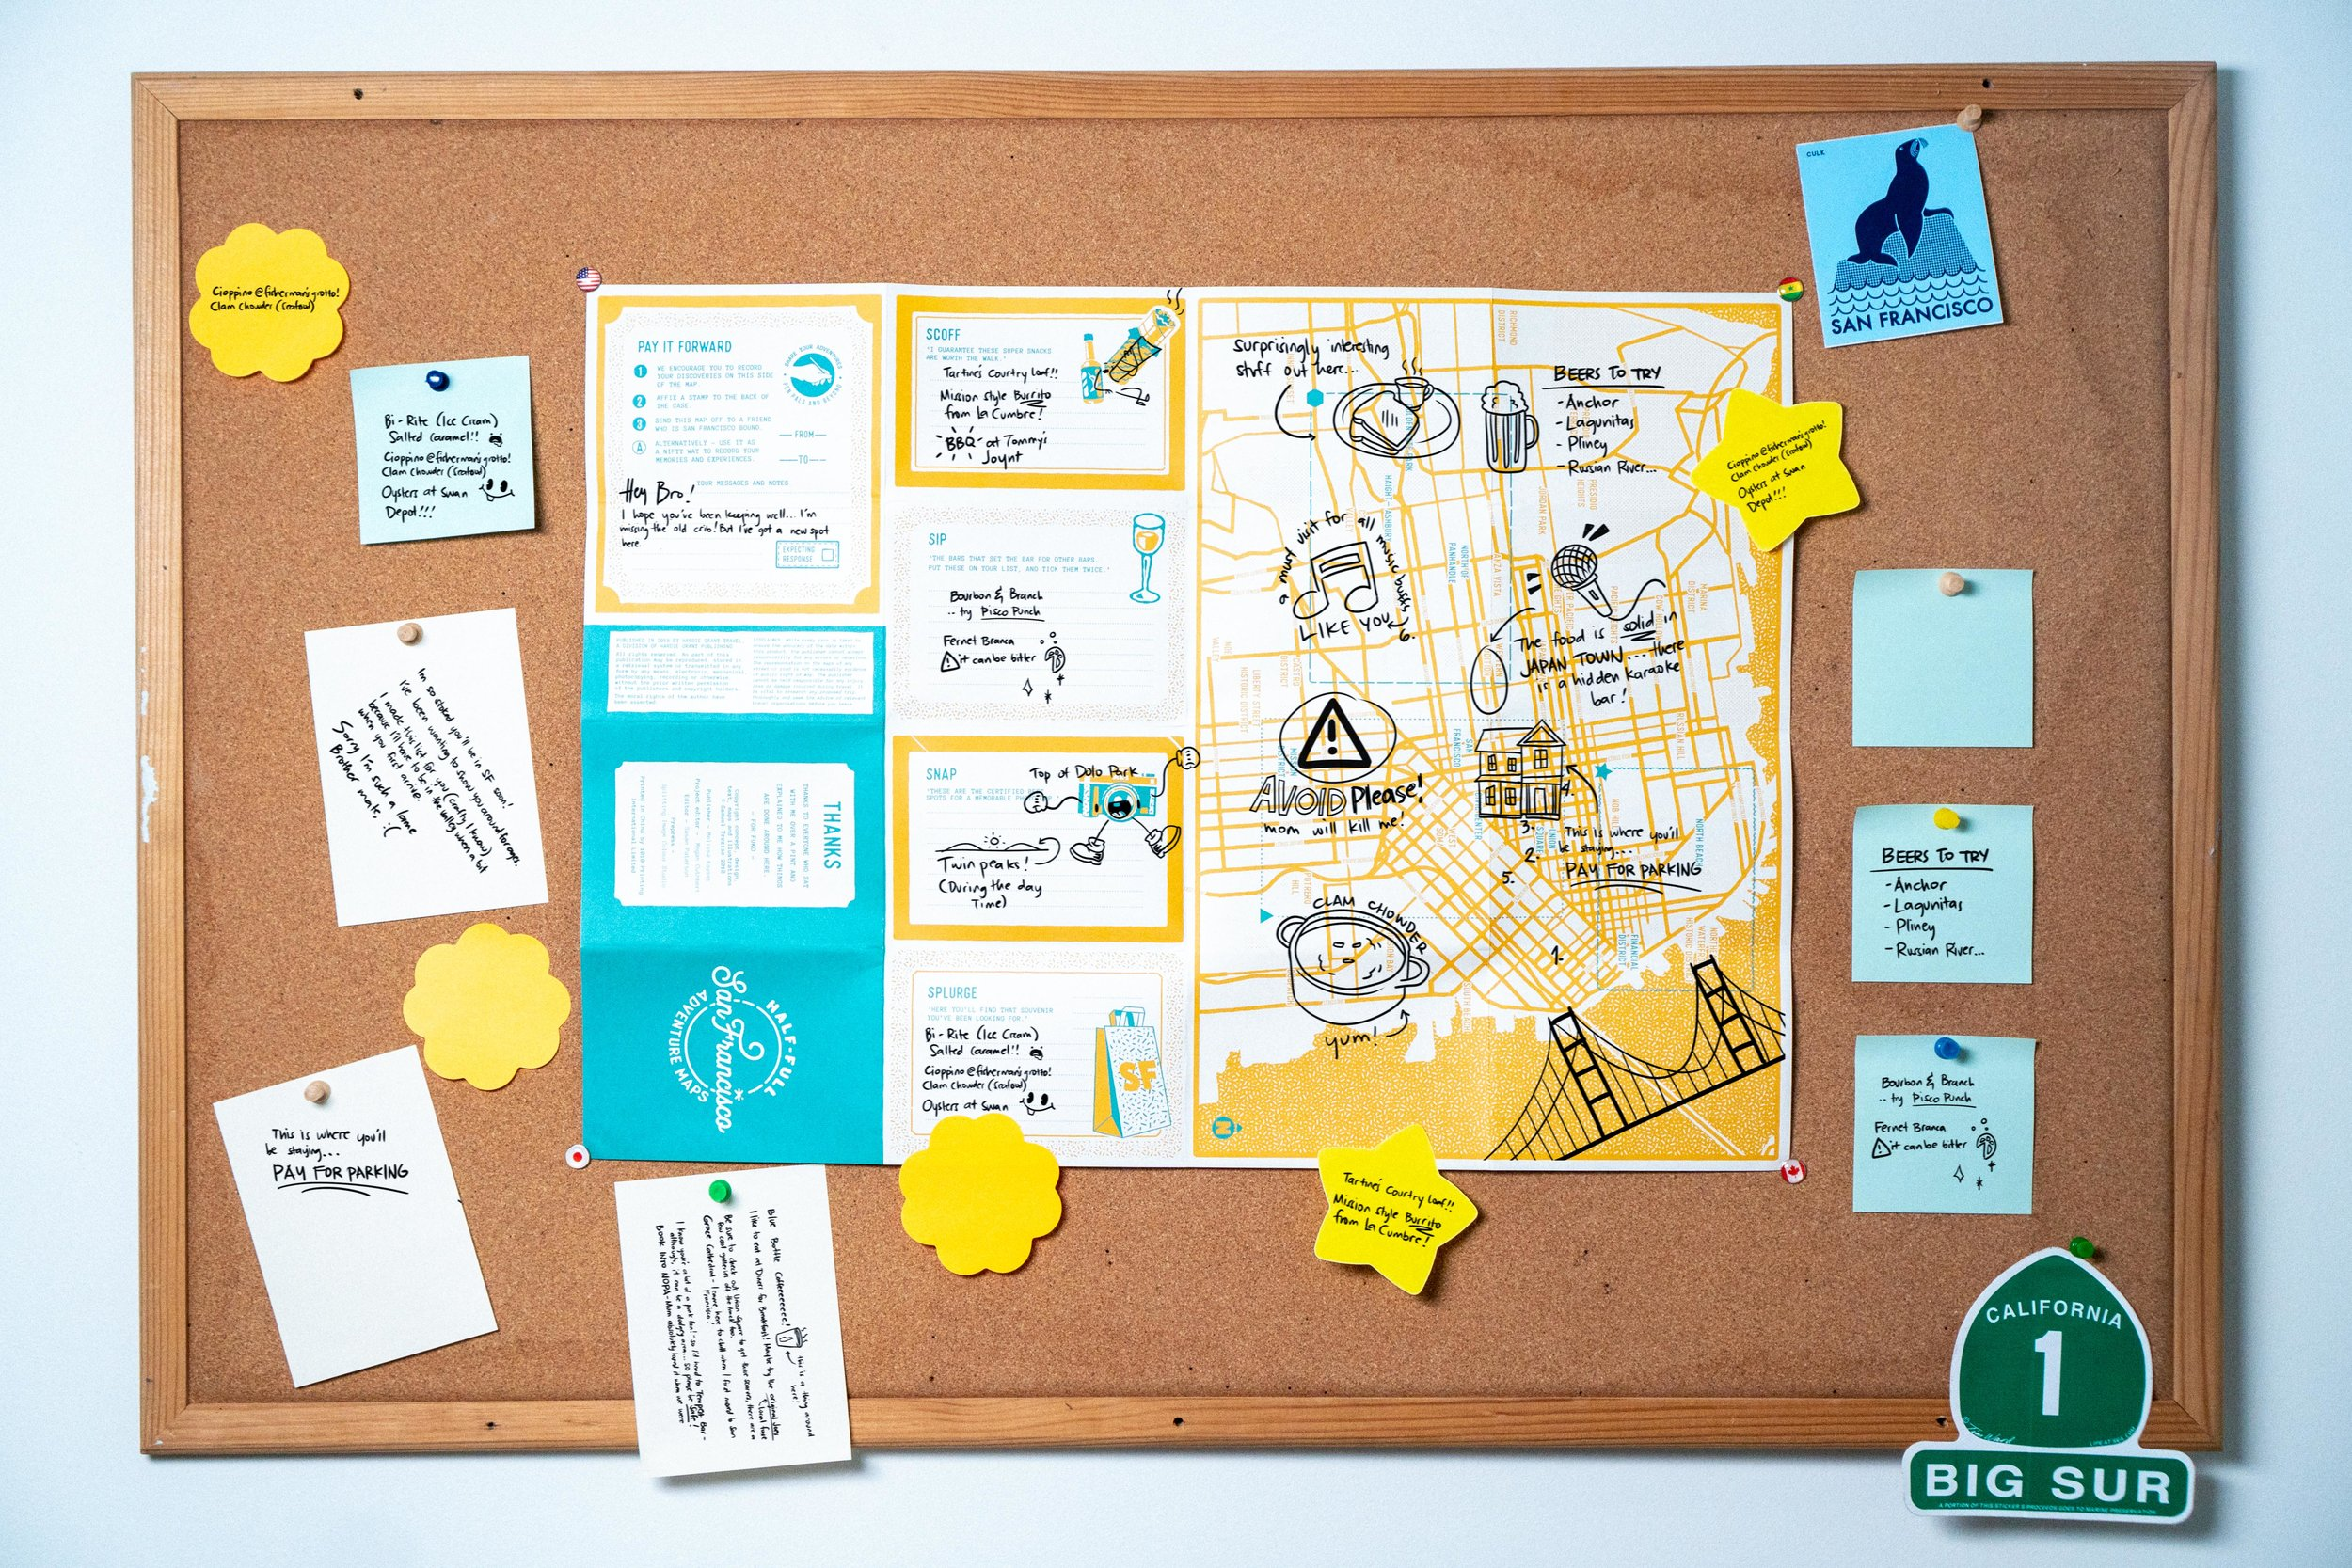 Half-Full_Adventure_Maps_Sam Trezise-8.jpg